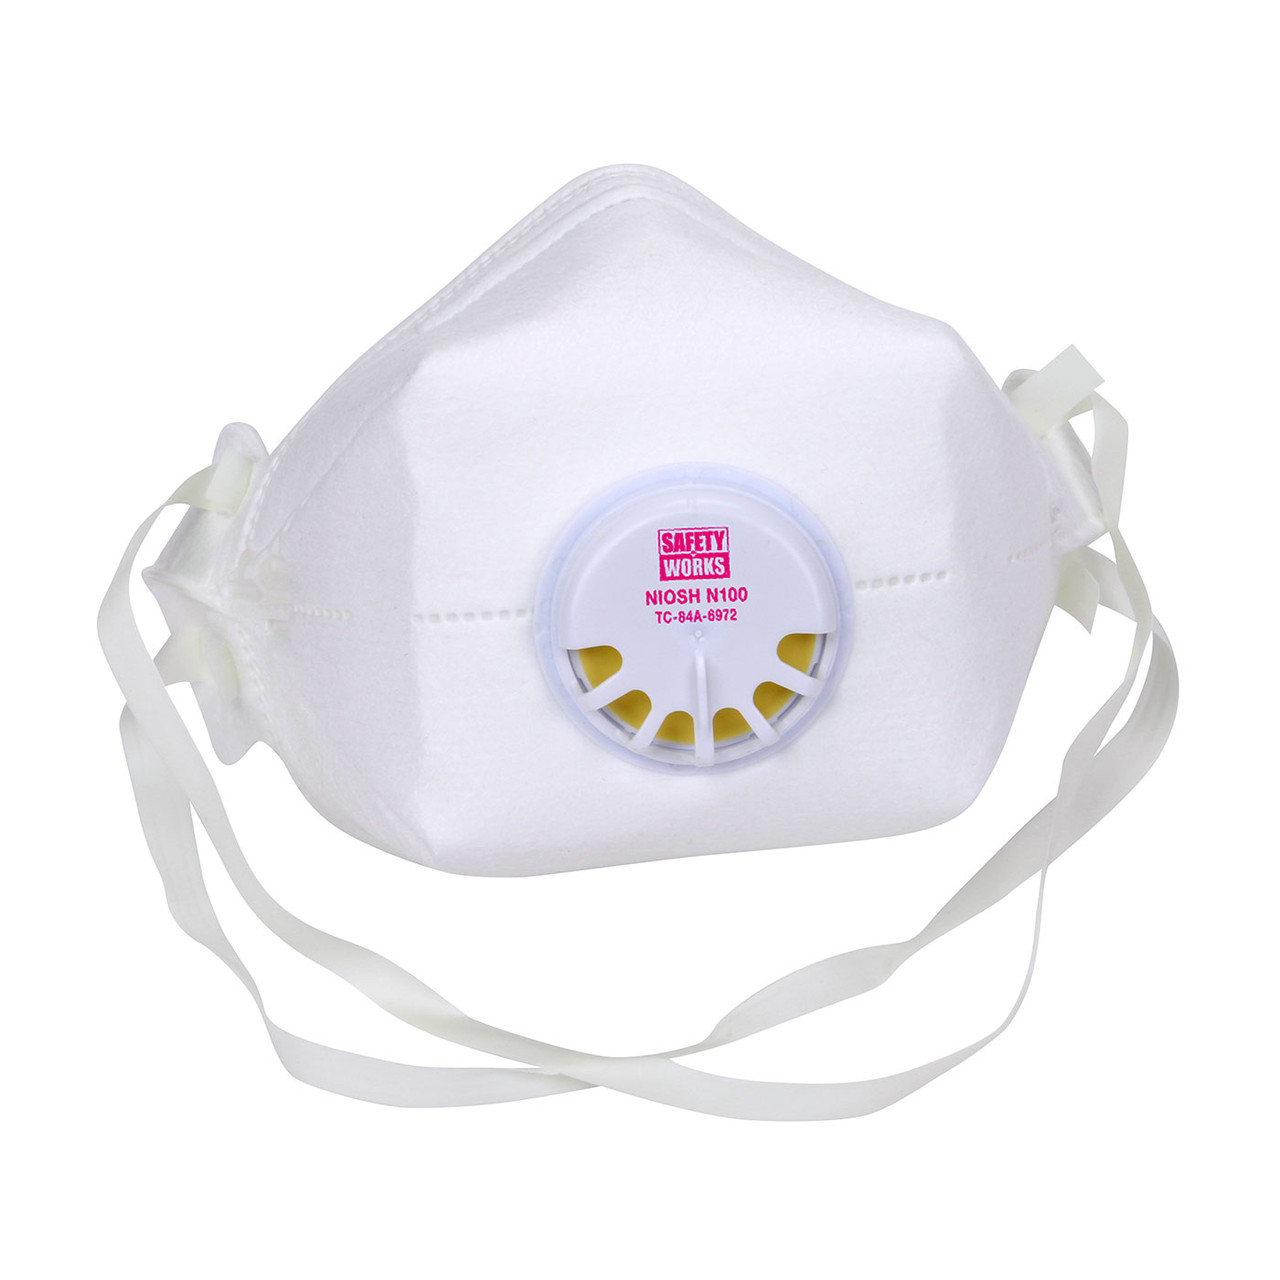 12 Works Safety Case N100 Disposable Swx00398 Respirator Particulate Of Masks